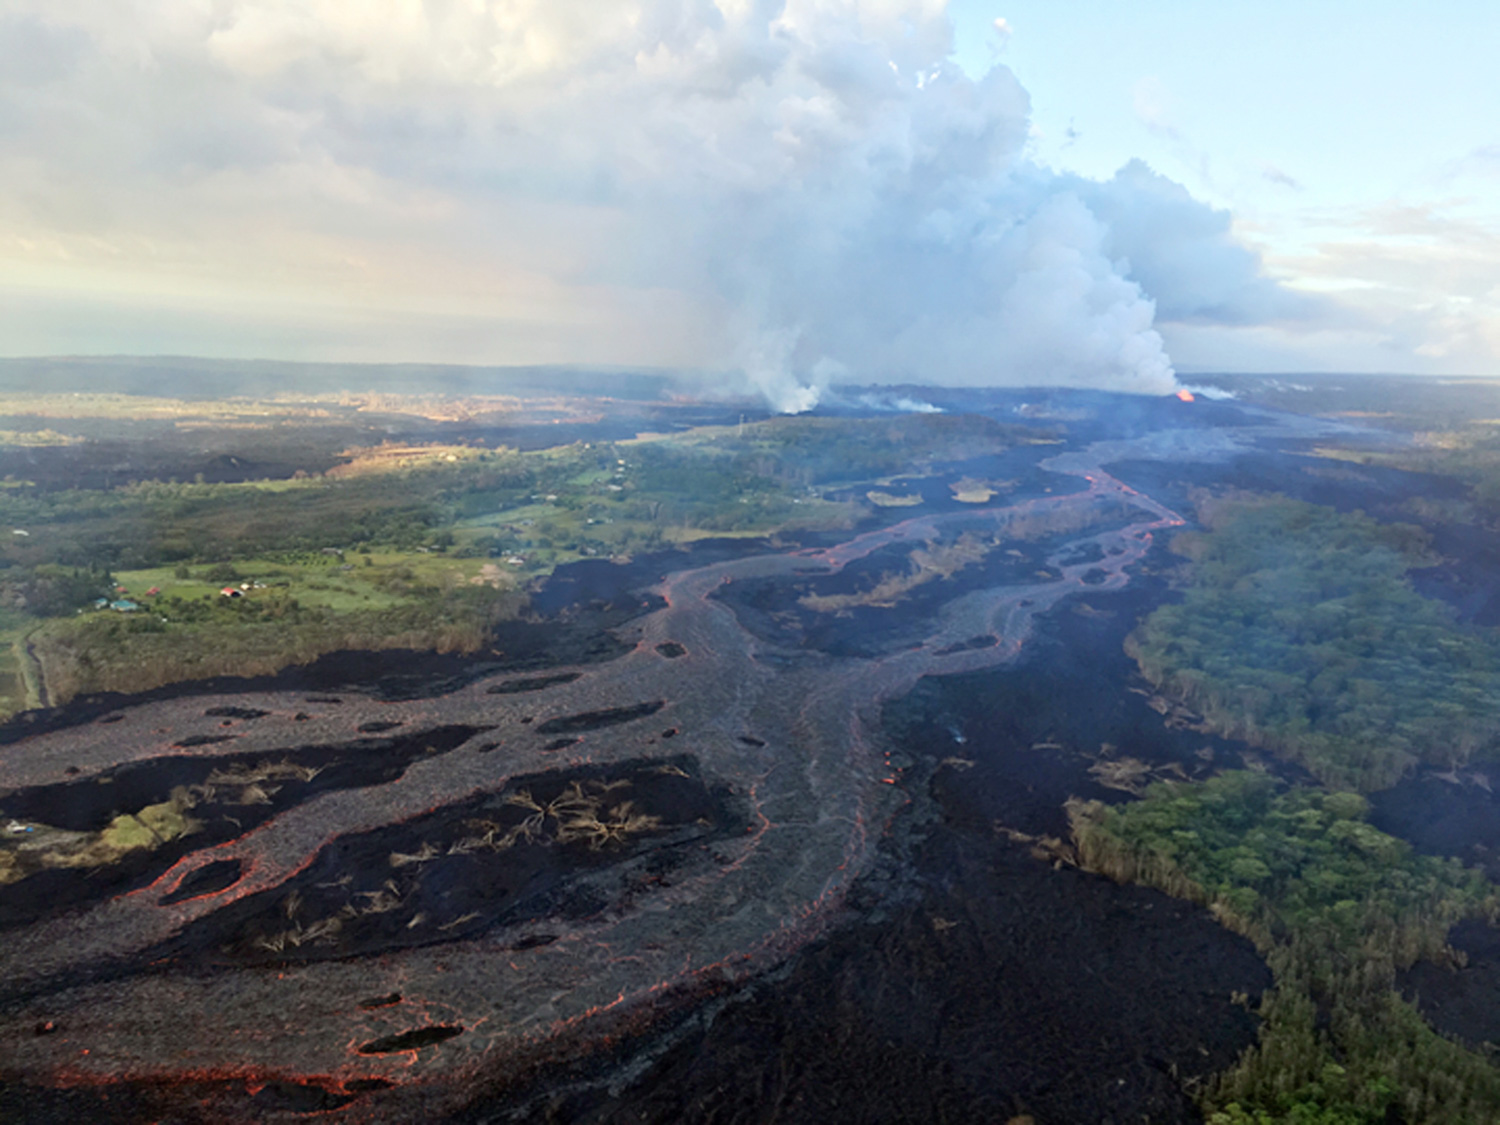 <div class='meta'><div class='origin-logo' data-origin='none'></div><span class='caption-text' data-credit='U.S. Geological Survey via AP'>Kilauea's lower East Rift Zone, showing continued fountaining of a fissure and the lava flow channel fed by it near the town of Kapoho on the island of Hawaii.</span></div>